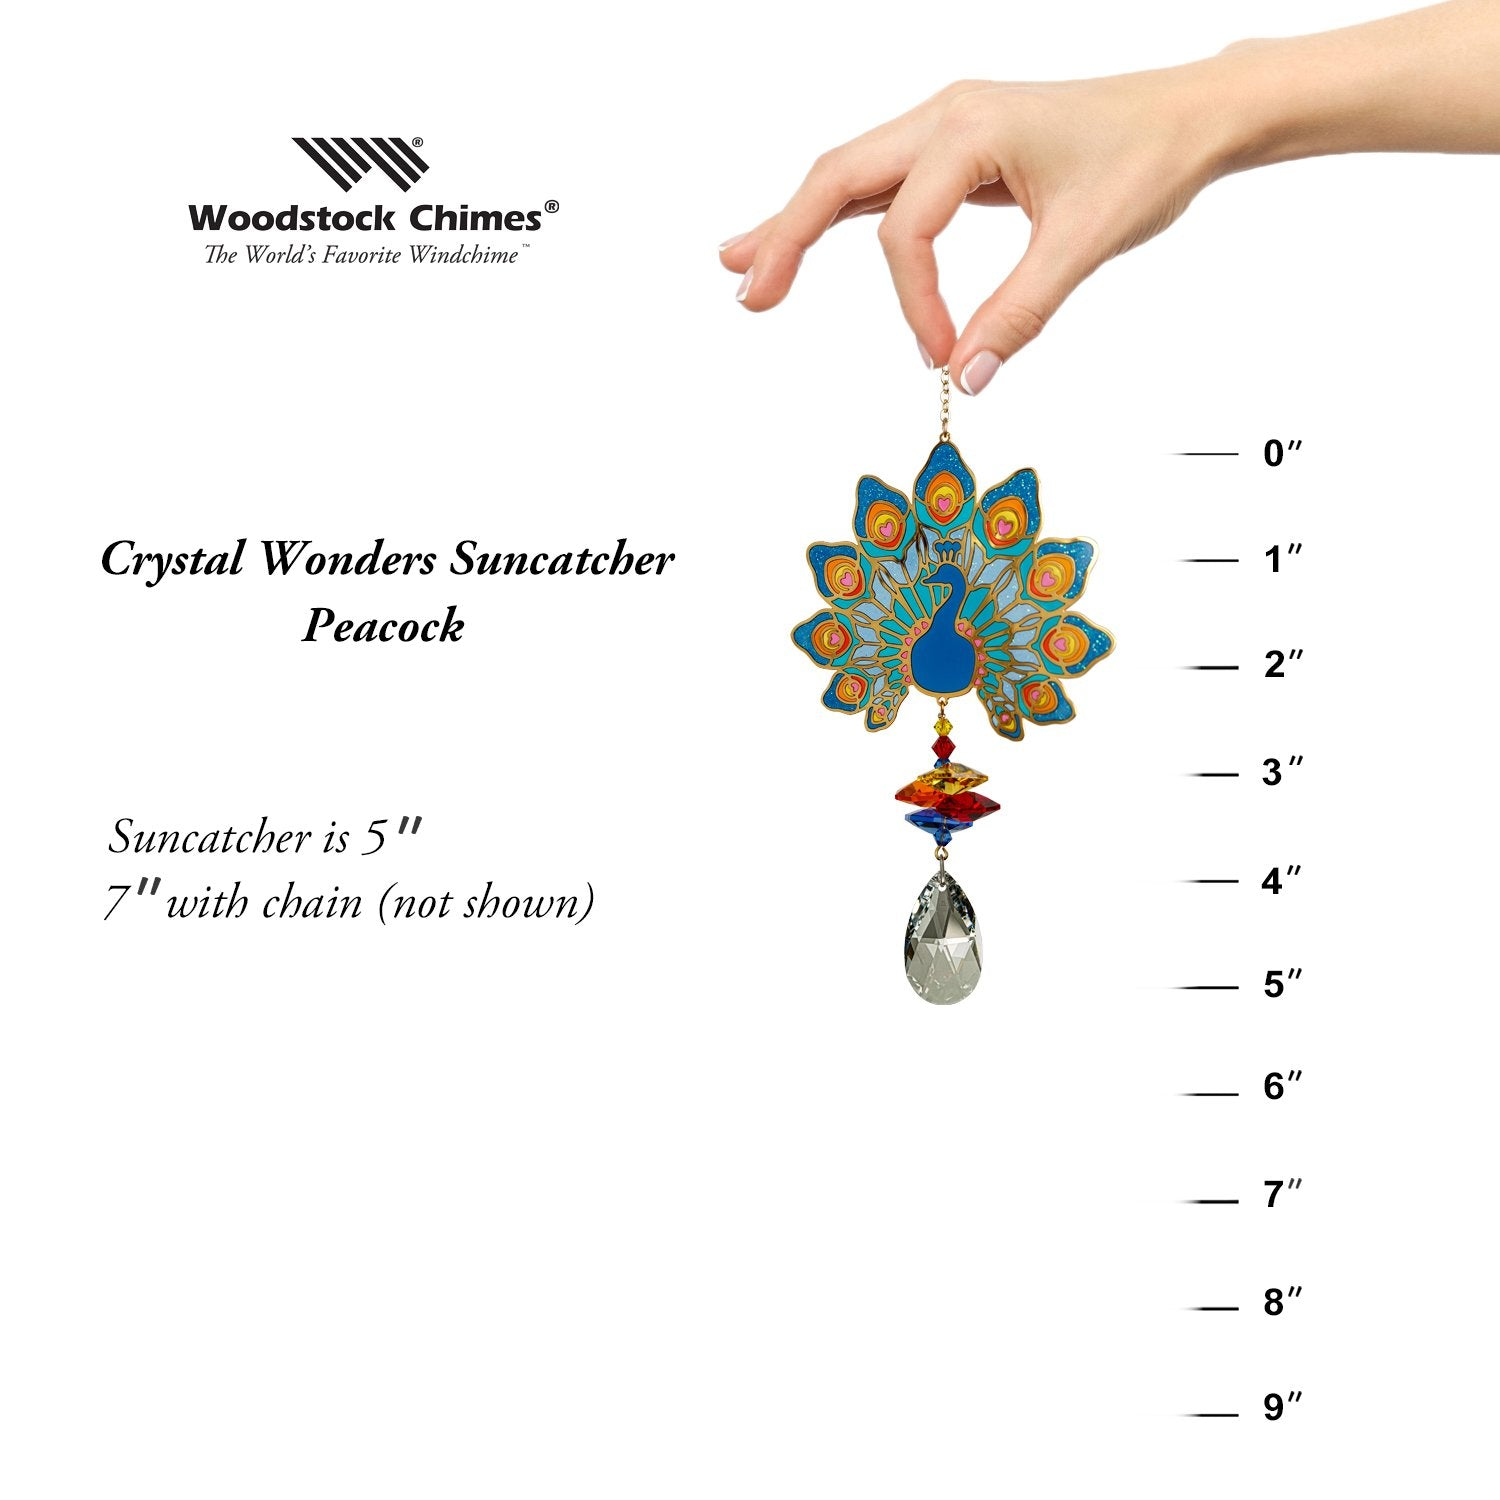 Crystal Wonders - Peacock proportion image